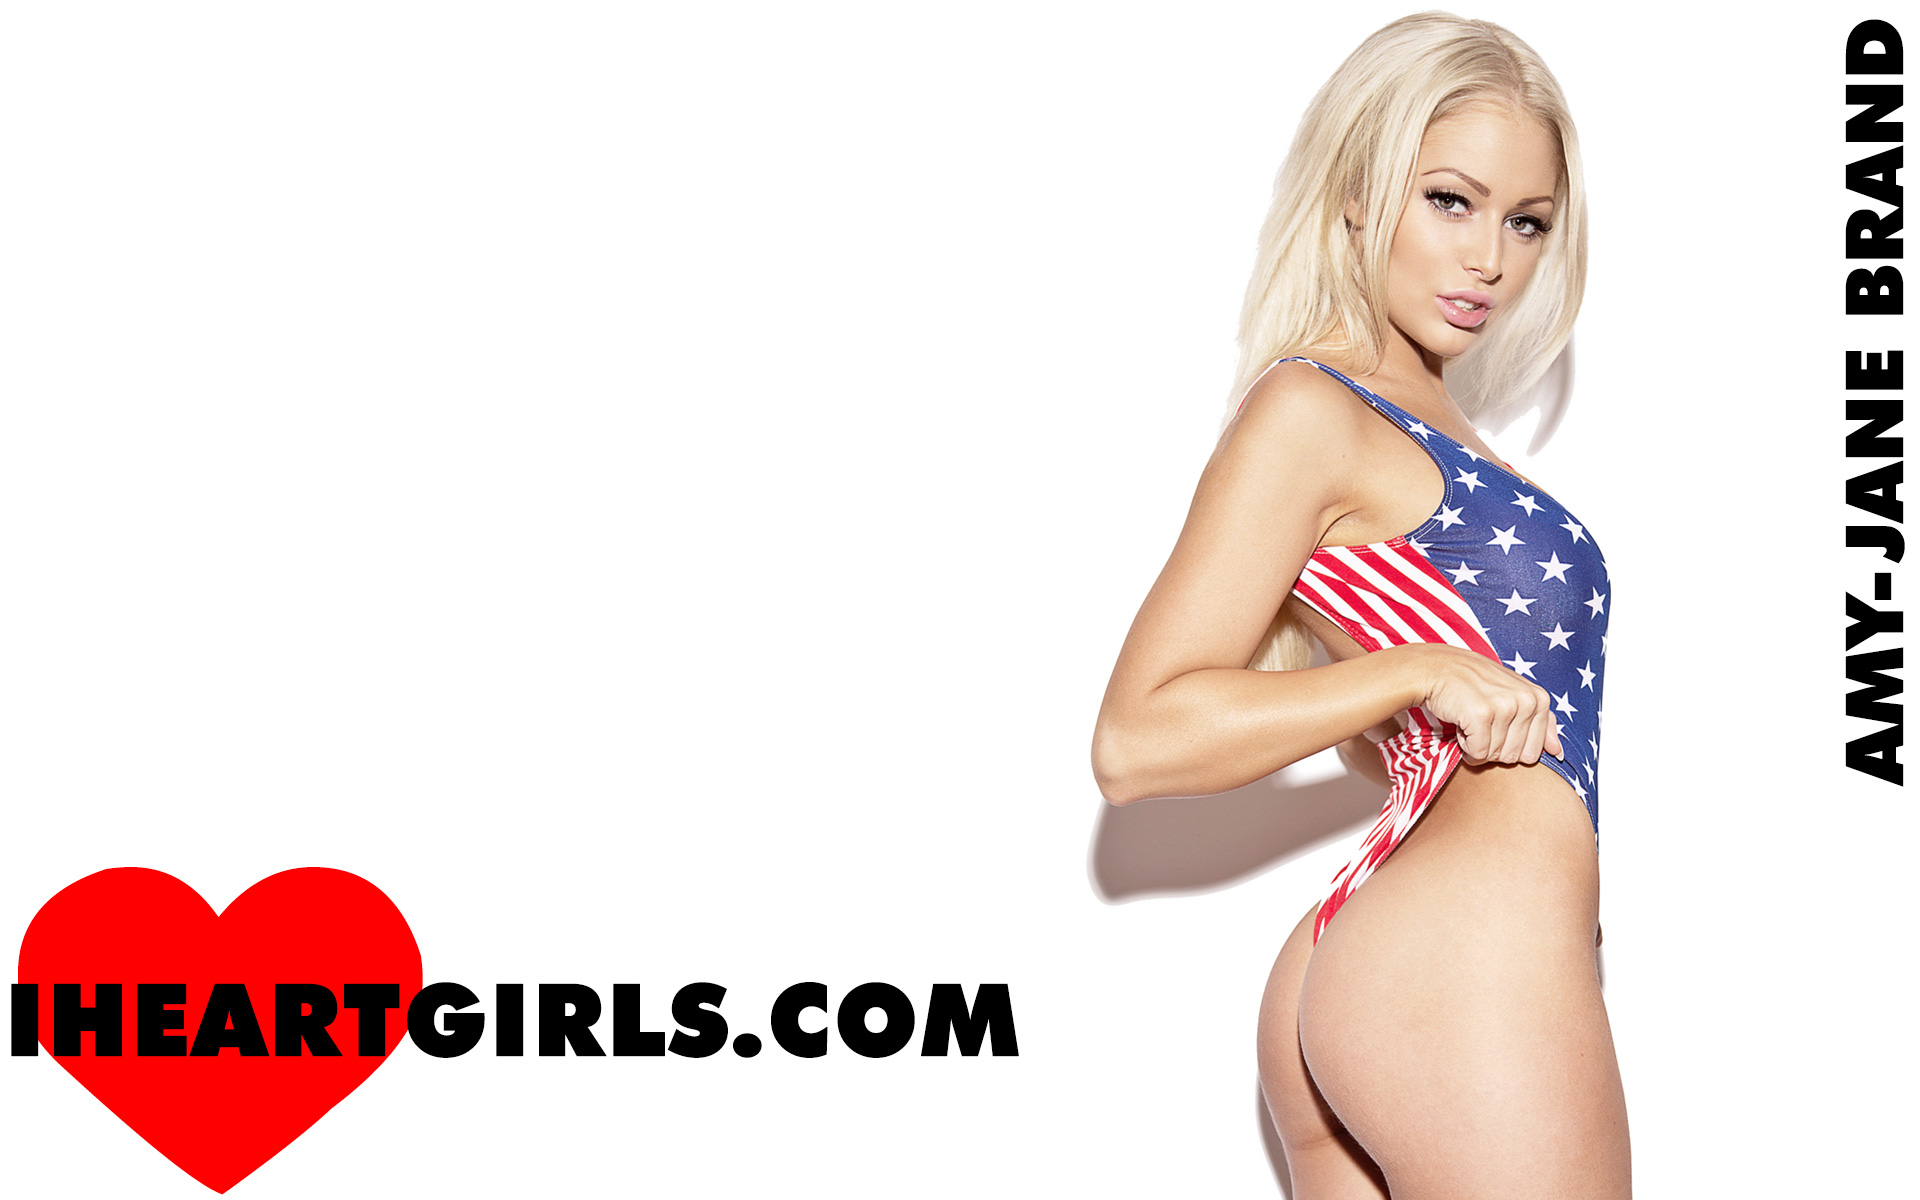 Amy-Jane-Brand-iheartgirls-Wallpaper-2-1920x1200